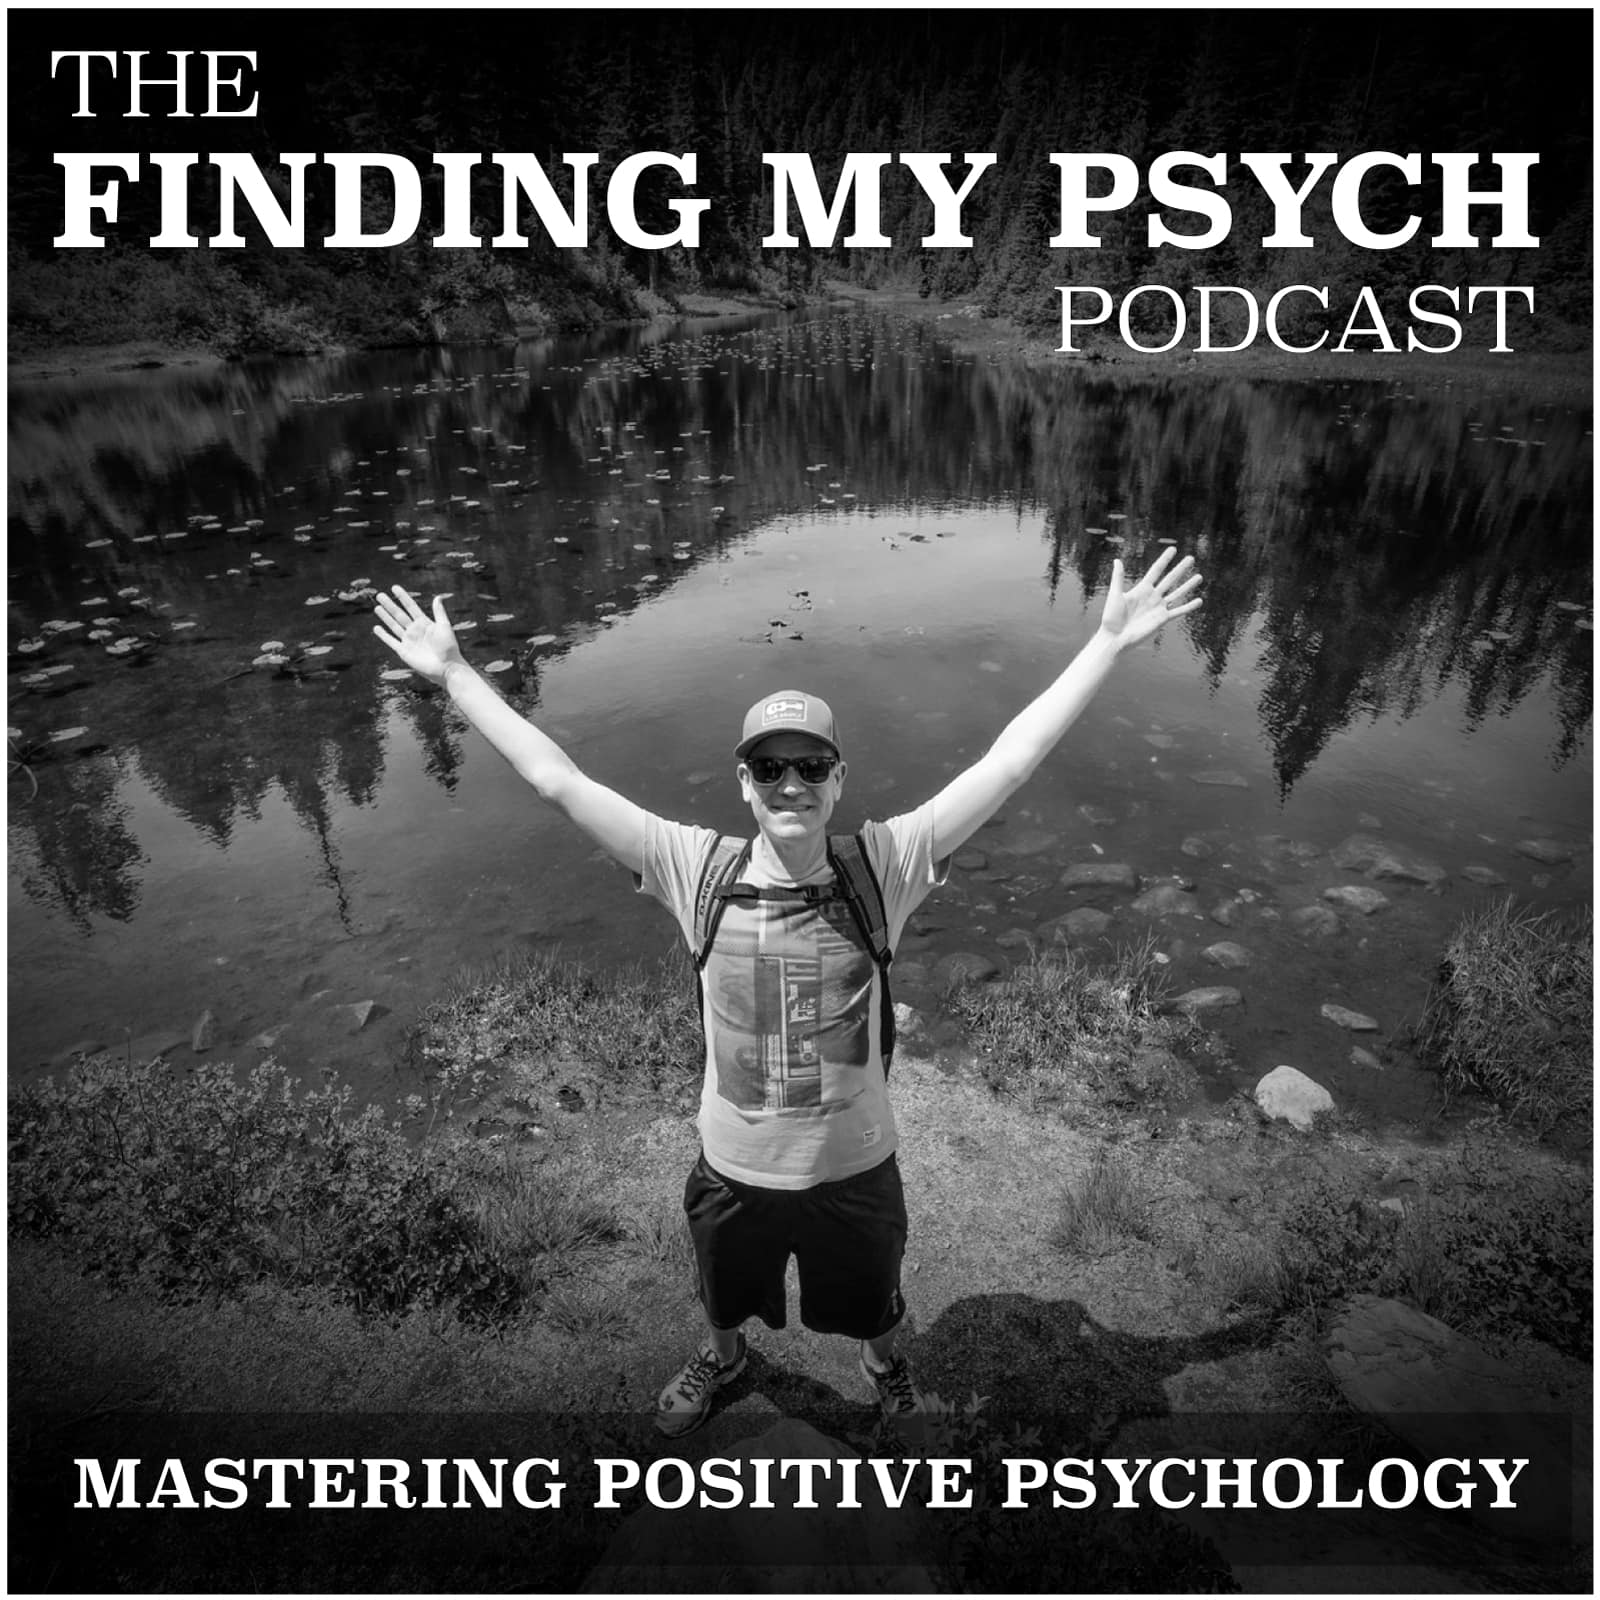 Subscribe to the Finding My Psych Podcast